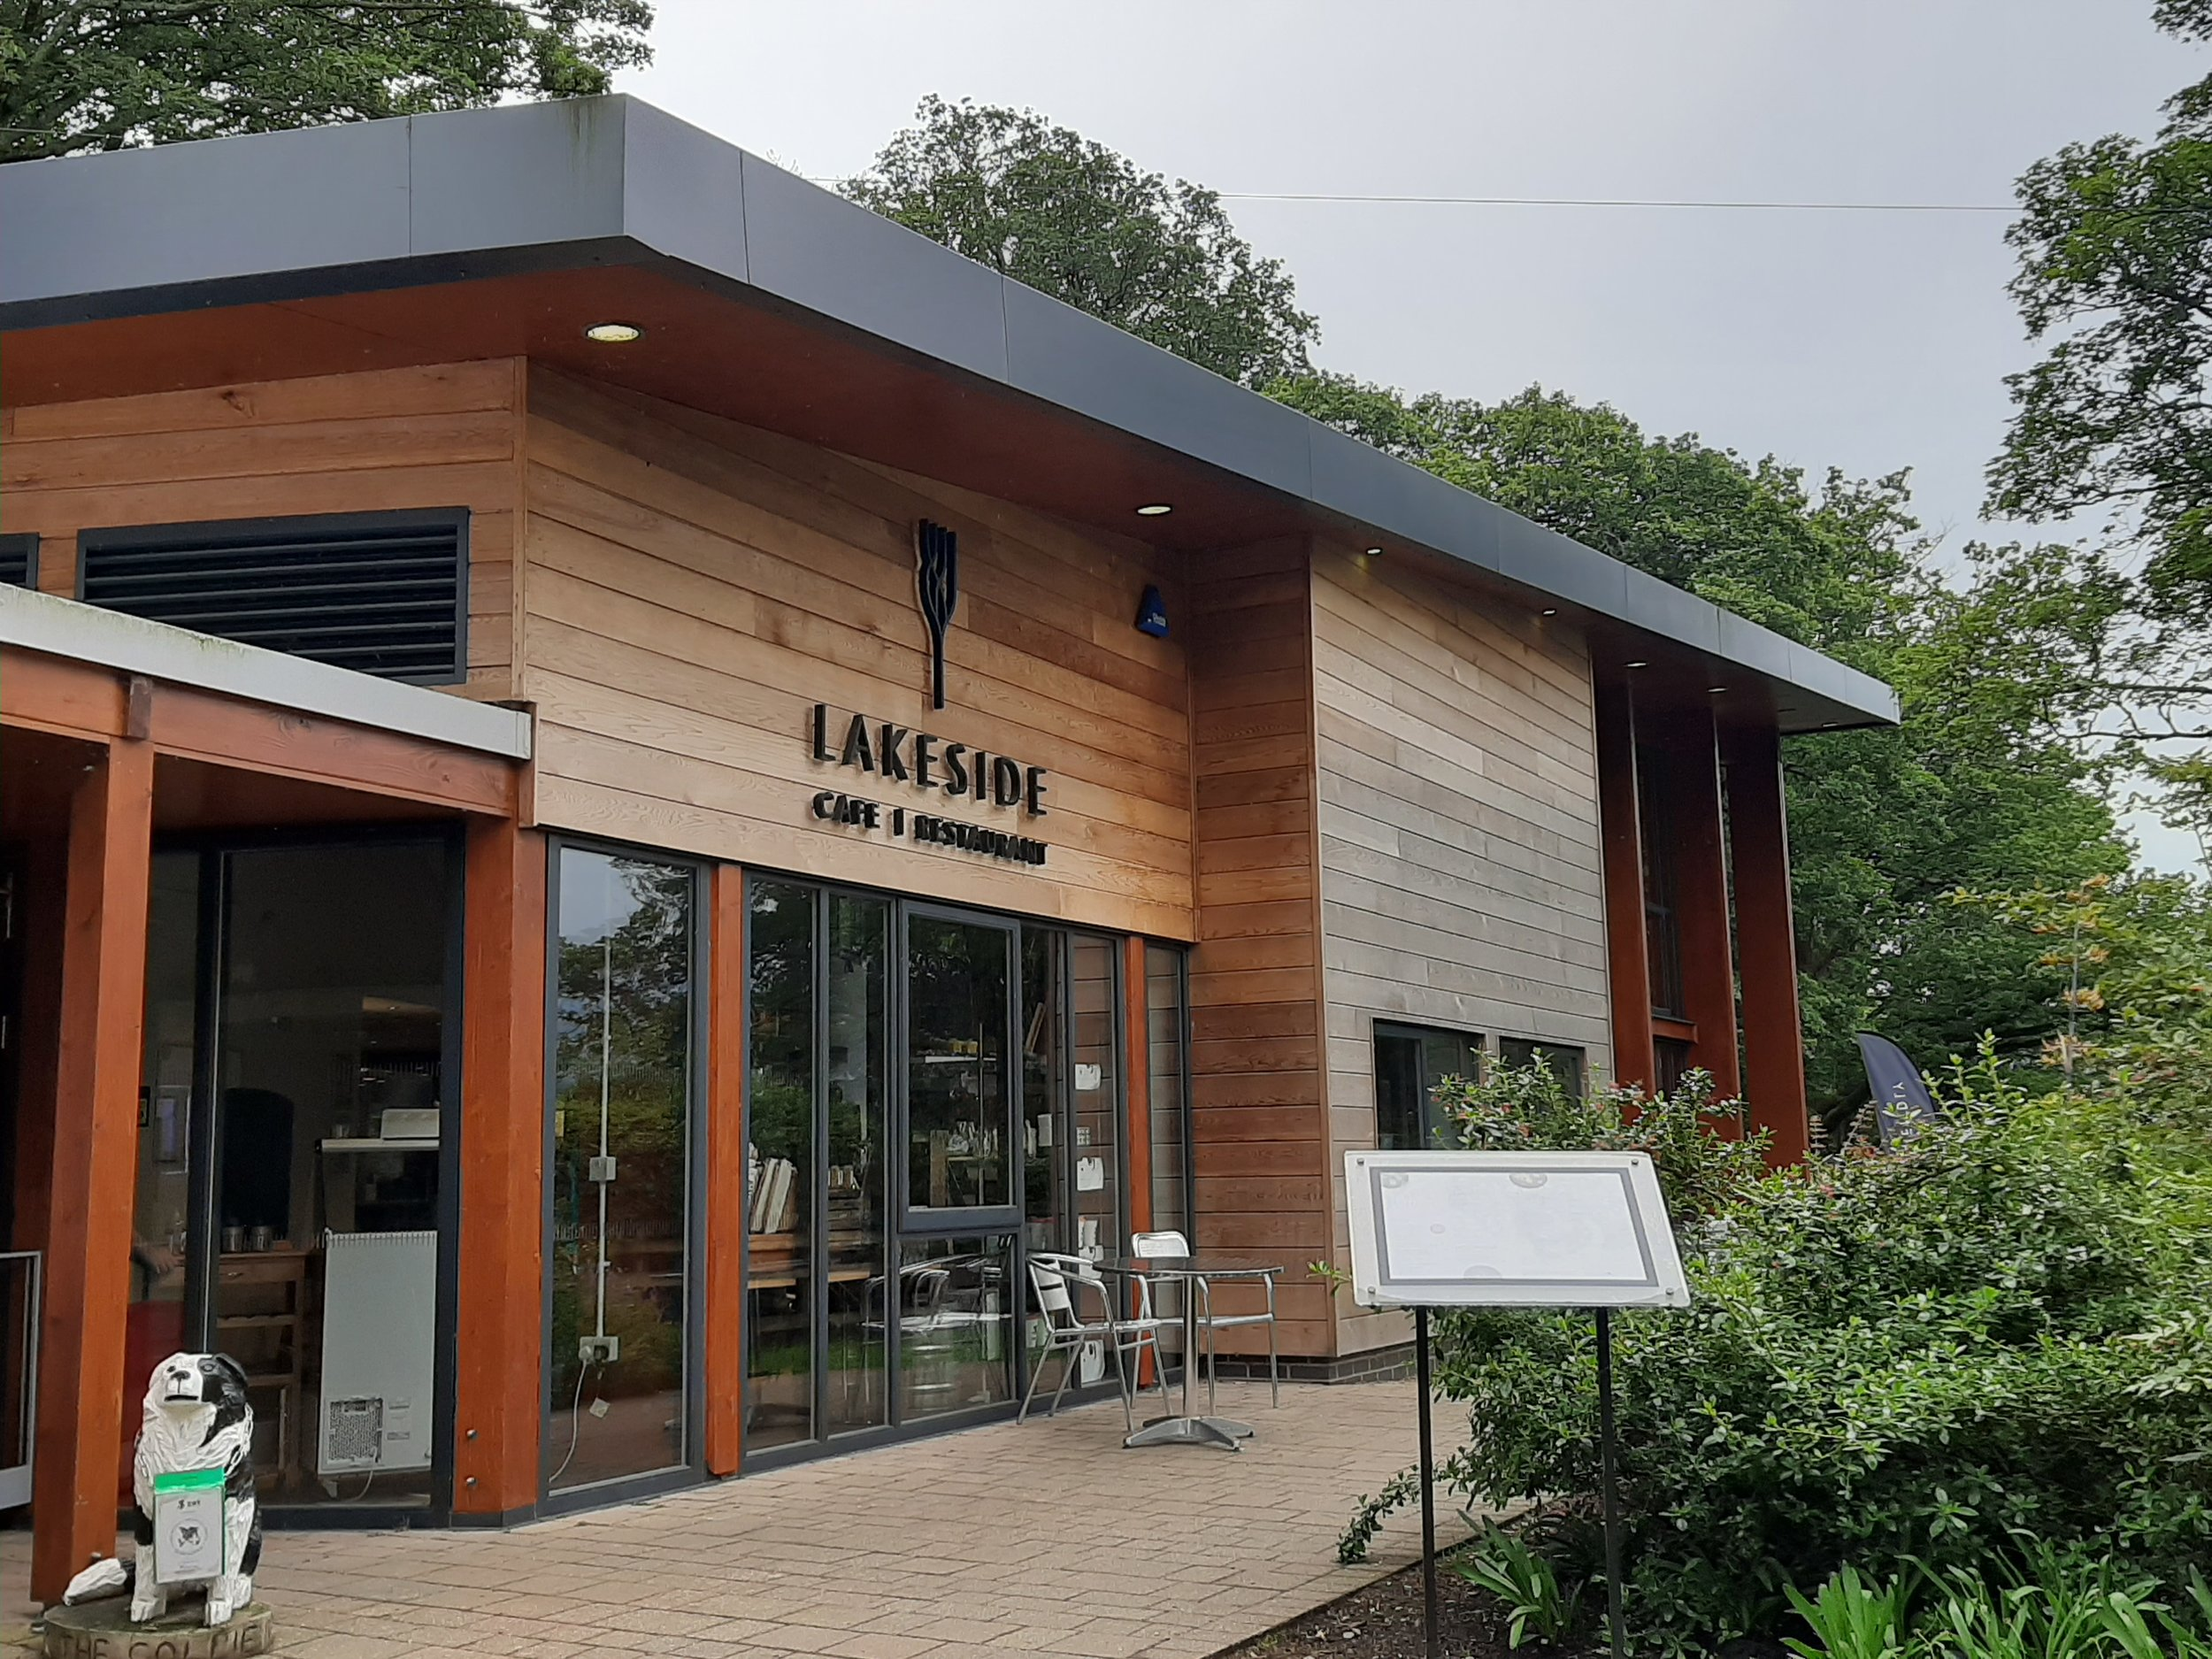 Lakeside Cafe and Restaurant   Lakeside Café & Restaurant is perched between the theatre and Derwentwater. Lofty, light and airy, its large windows give spectacular views across the lake to Catbells and beyond. It's the perfect setting for breakfast, lunch, coffee and cake or dinner before a show, whether you are seeing a show, or have just stopped by on impulse. Opening hours: 9.00am. Last orders at 8.30pm.  Theatre by the Lake, Lakeside, Keswick, Cumbria CA12 5DJ